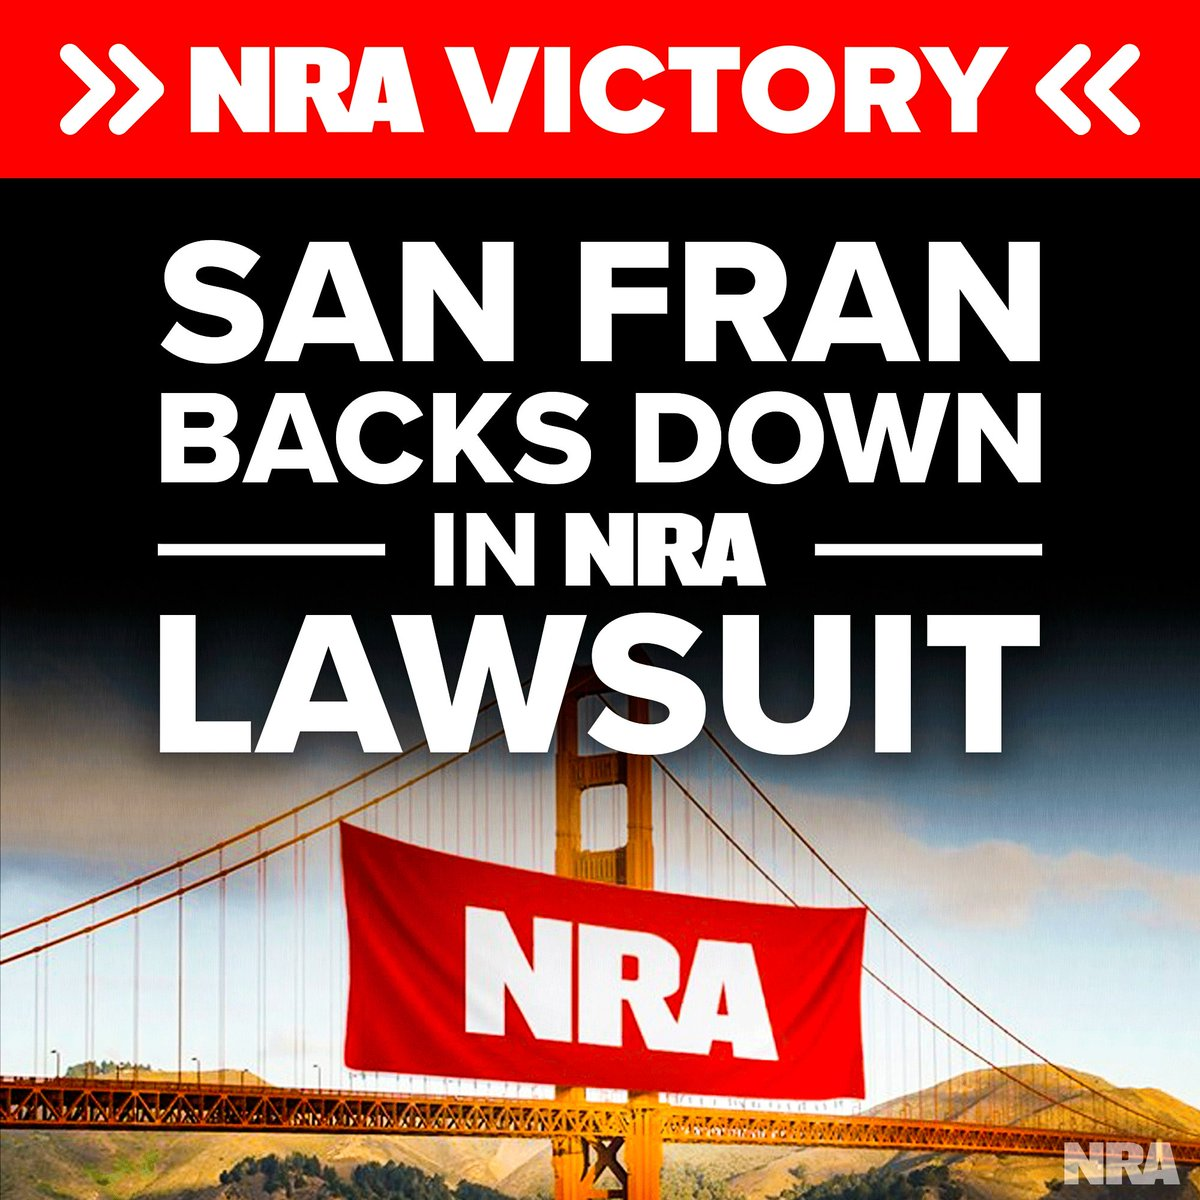 The @NRA declared victory in San Fran today, after Mayor Breed formally disavowed key provisions of a municipal resolution that labeled the NRA a domestic terrorist organization called for NRA contractors to be blacklisted. Read the statement here ➡️ bit.ly/NRAVictory